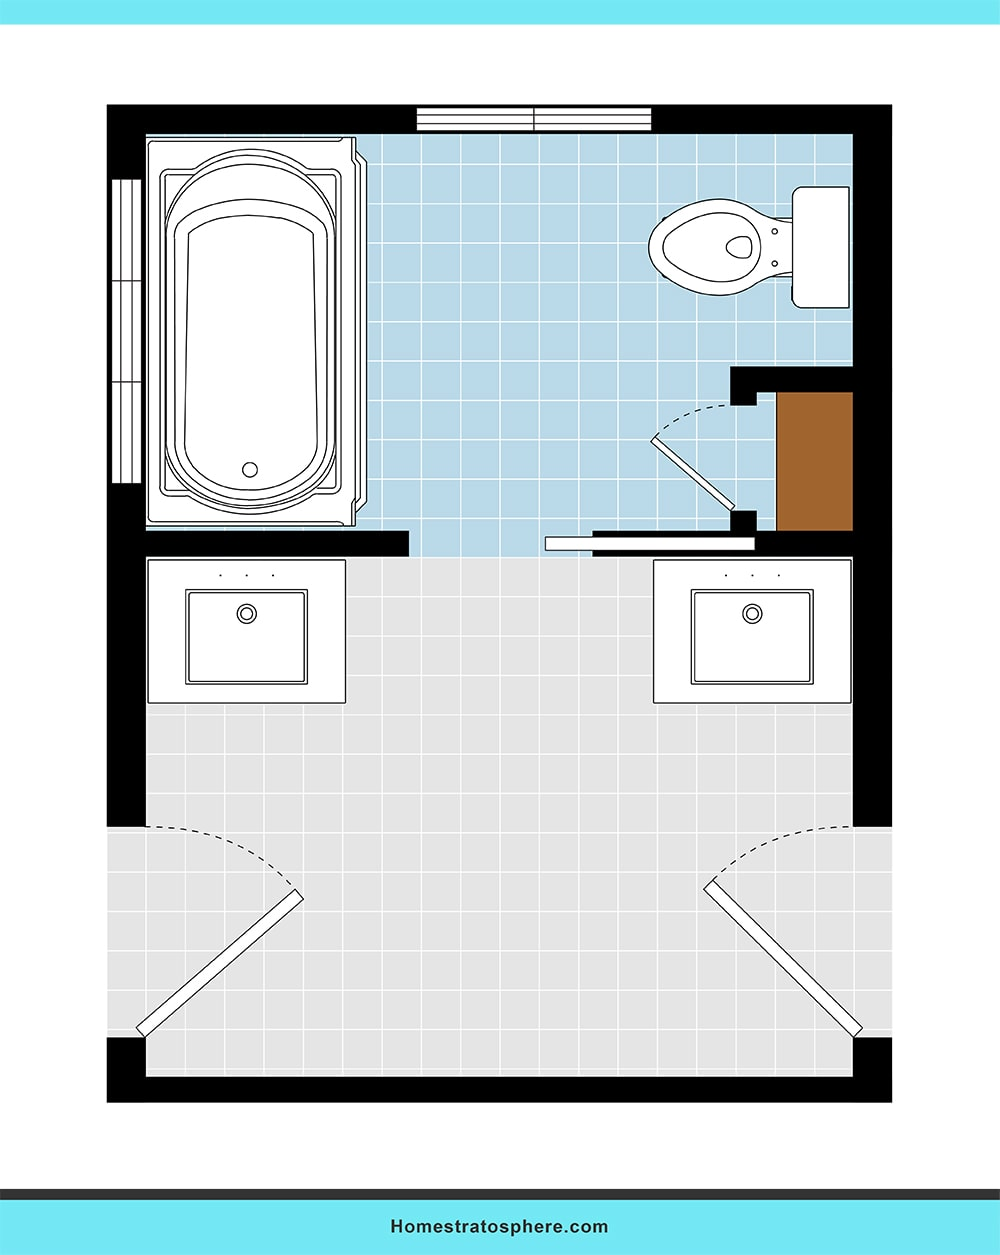 35 Bathroom Layout Ideas Floor Plans To Get The Most Out Of